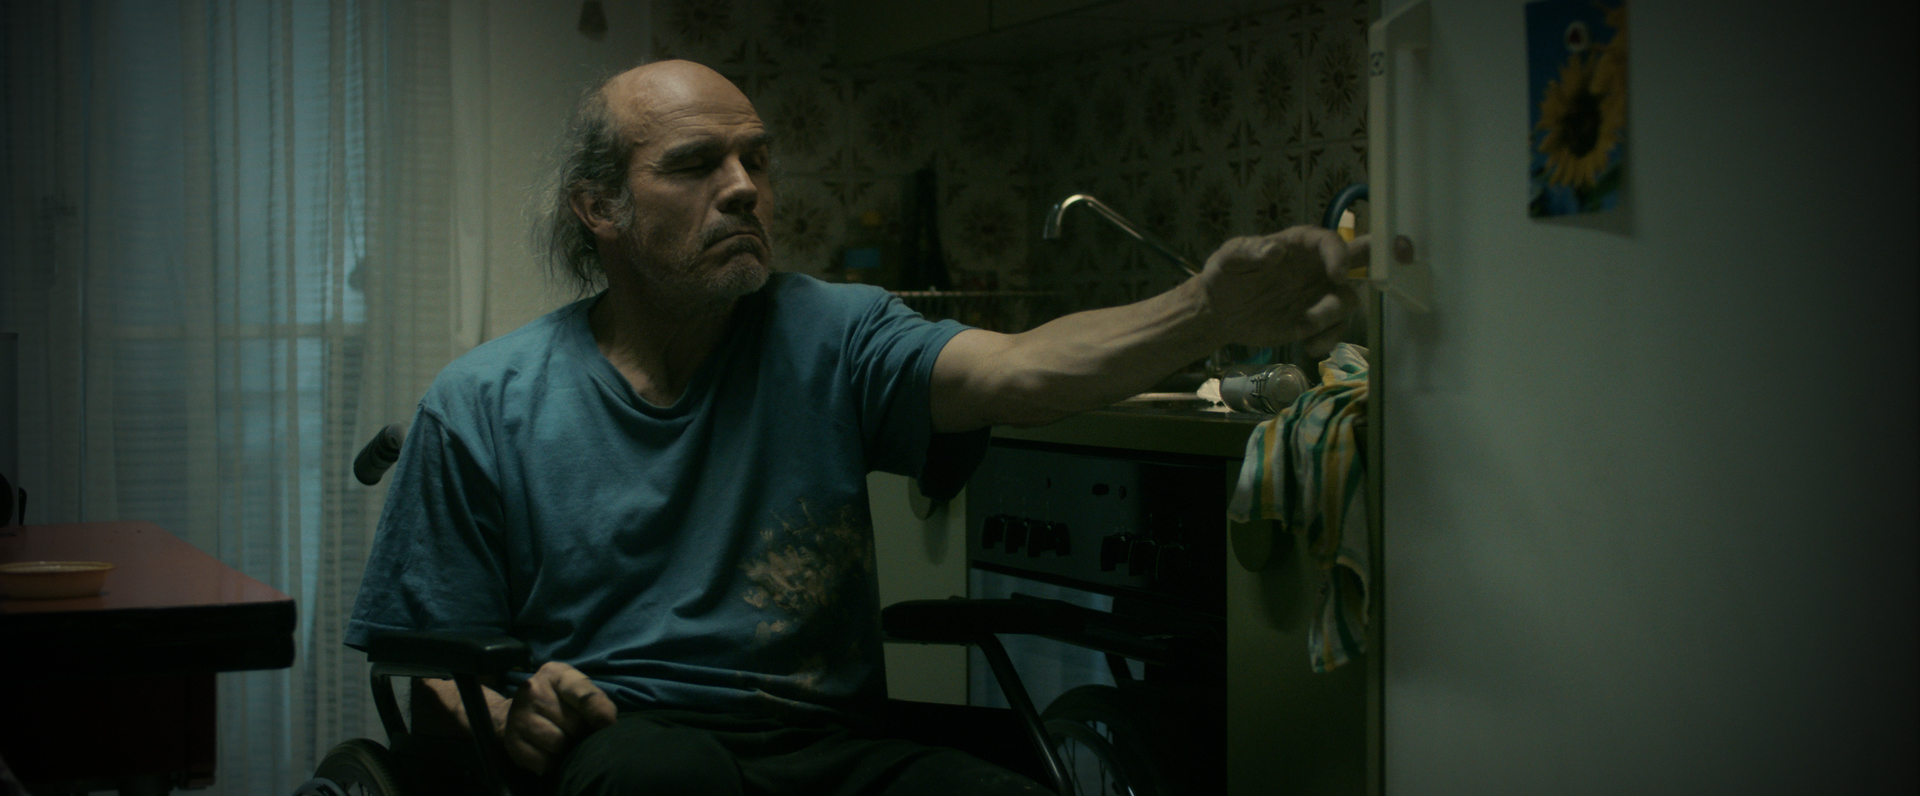 Manfred Liechti in Eating the Silence (2021)